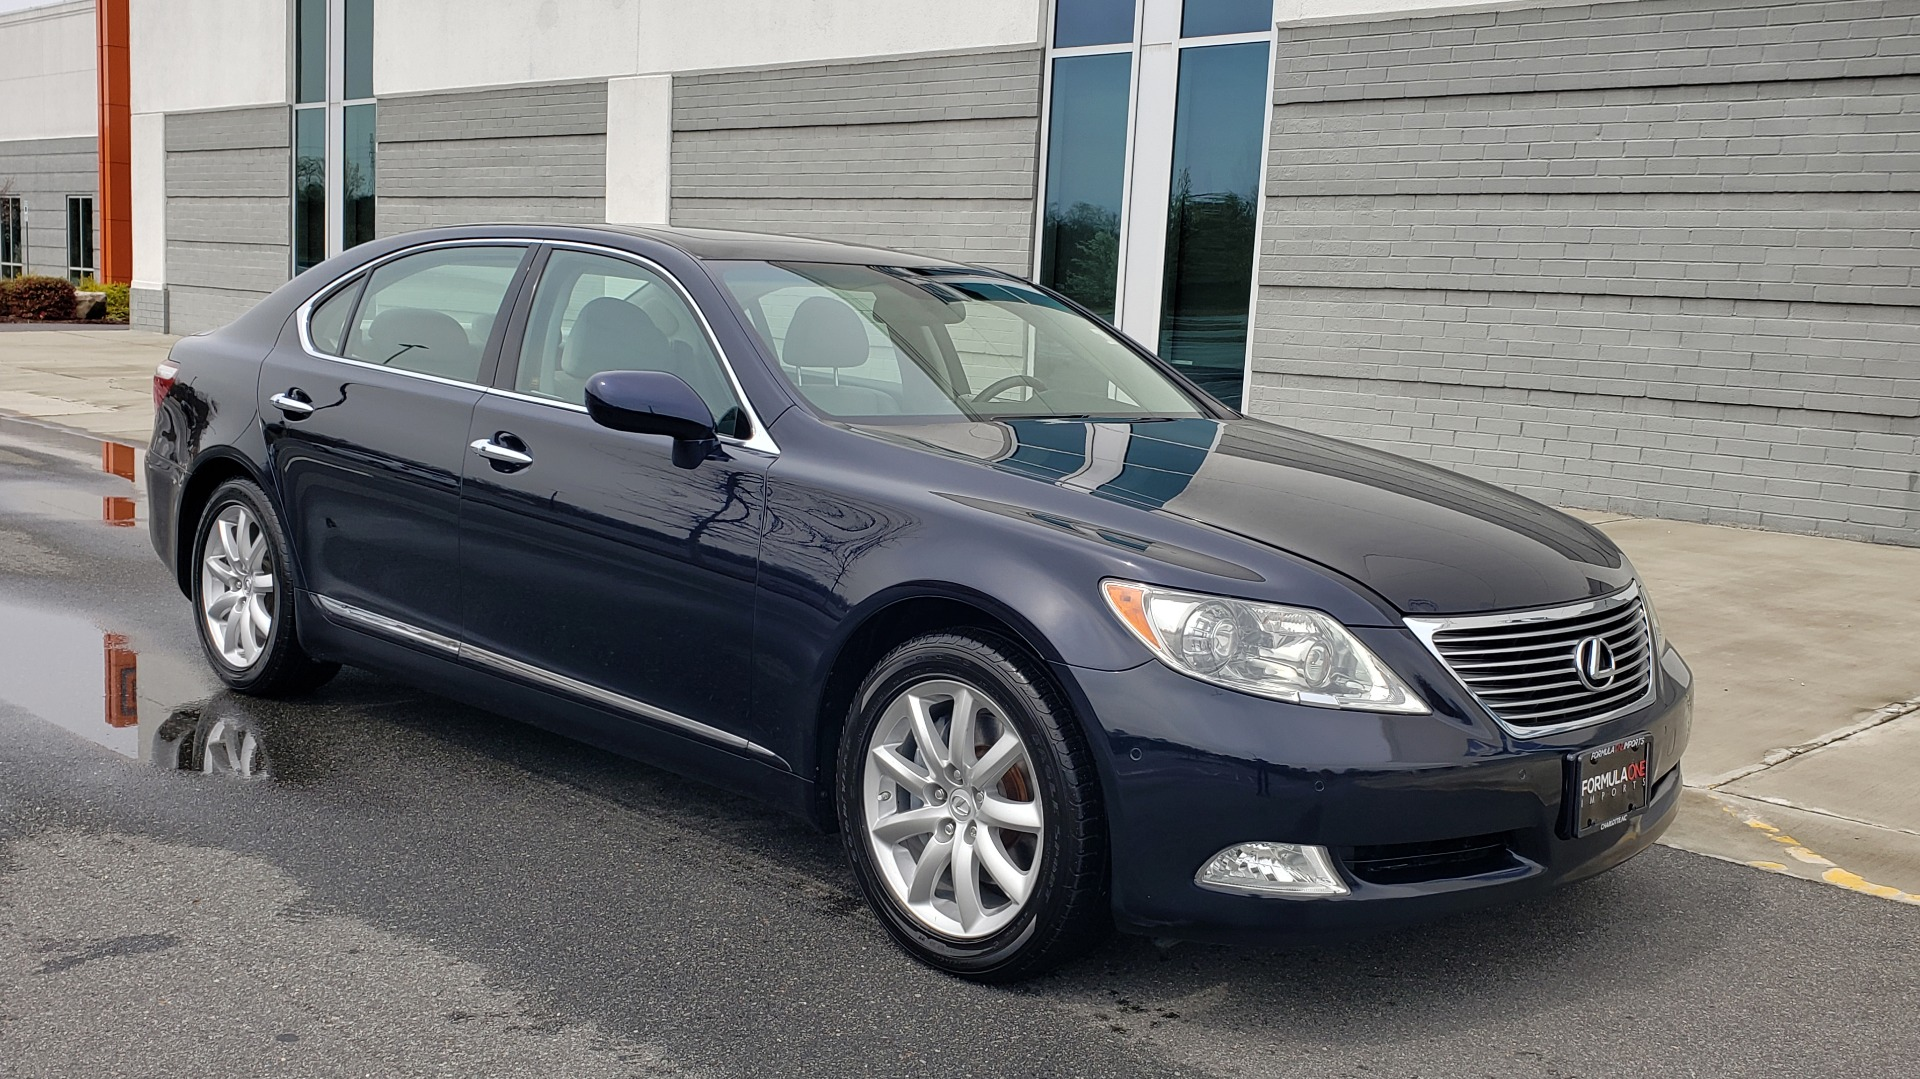 Used 2008 Lexus LS 460 LWB LUXURY SEDAN / MARK LEVINSON / INT PARK ASST / REARVIEW for sale Sold at Formula Imports in Charlotte NC 28227 5